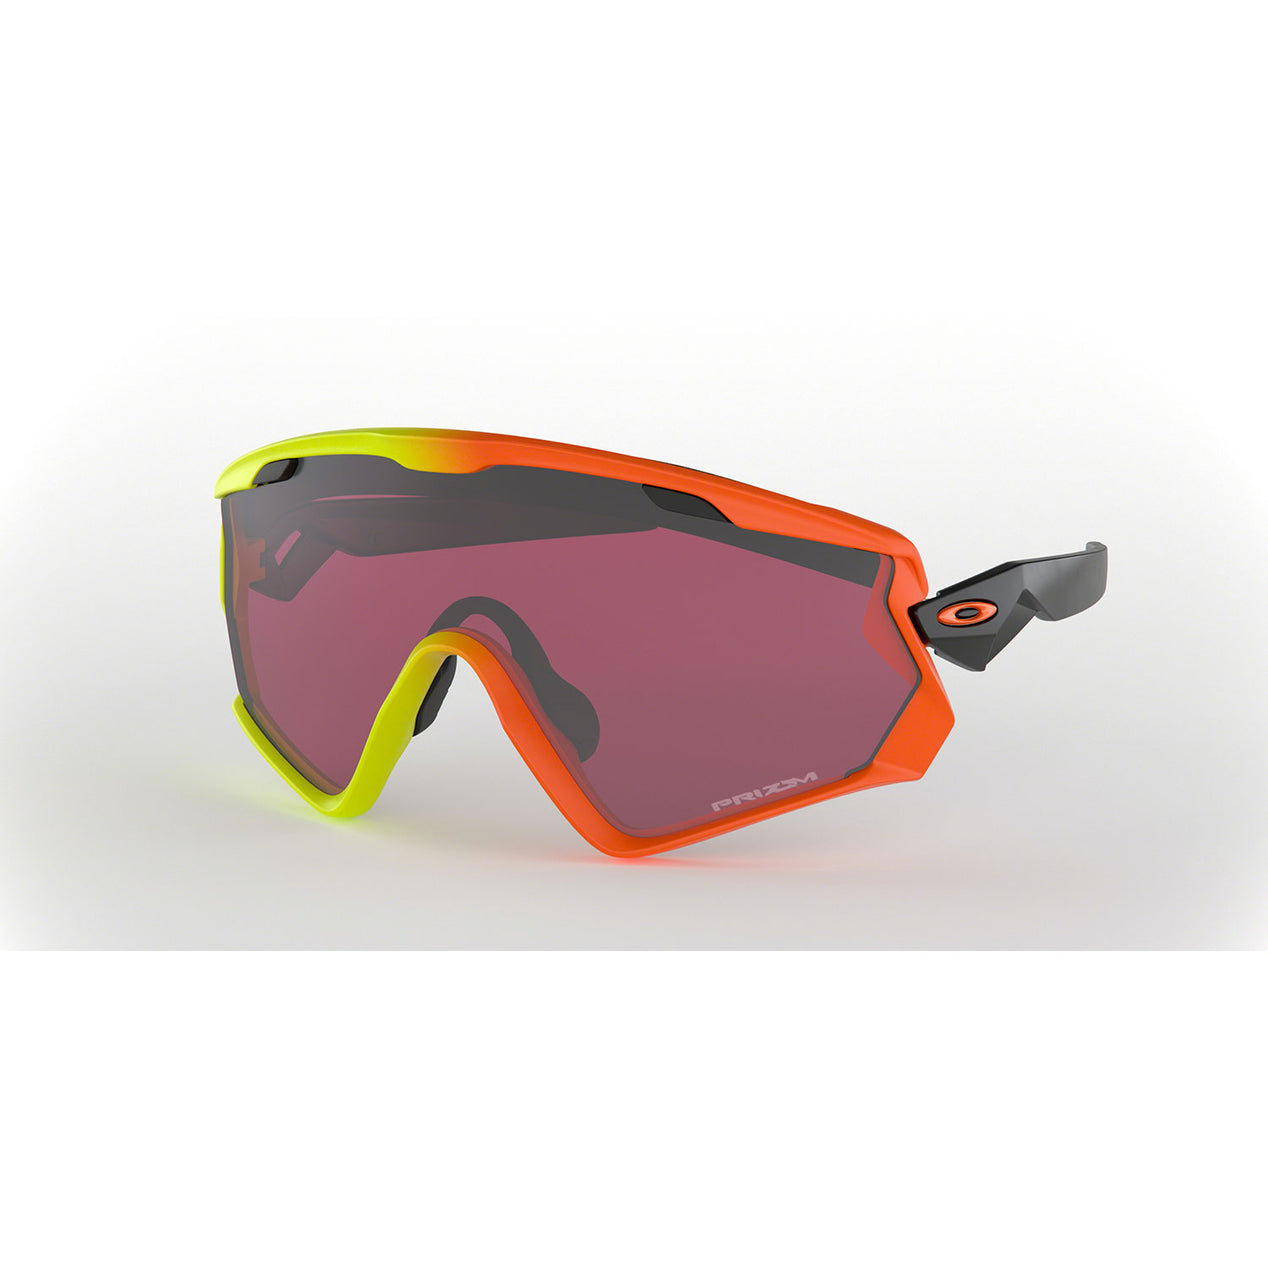 8b8995b097150c Lunettes de ski Wind Jacket 2.0 Harmony Fade - Lentille Prizm Snow Black  Iridium - Collection